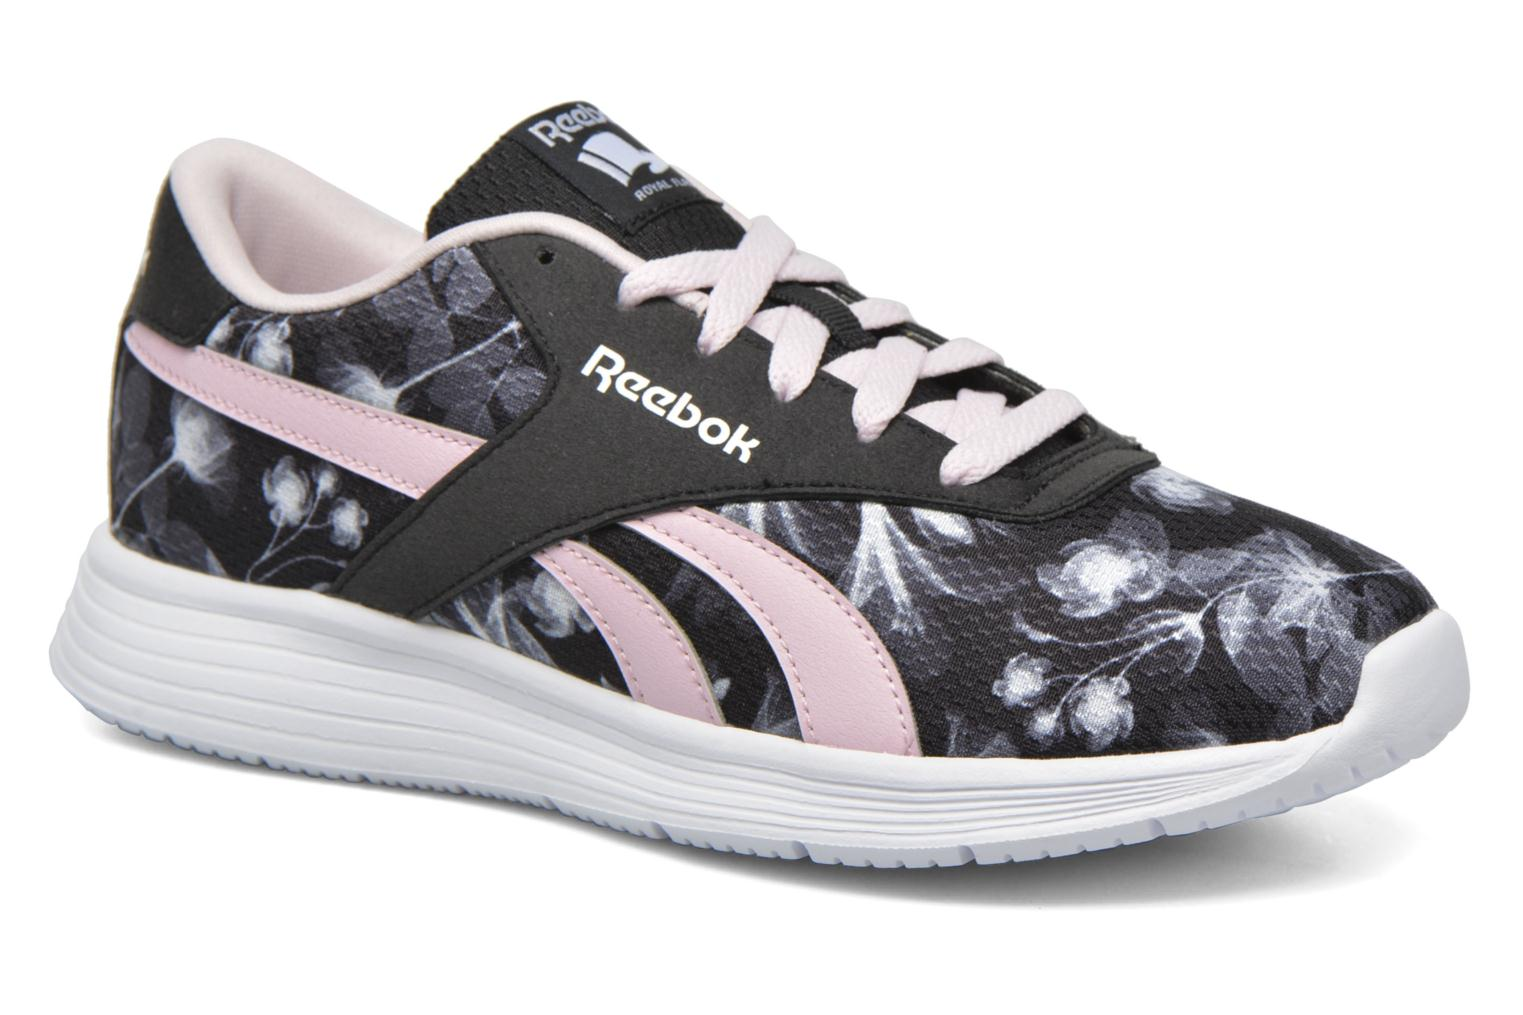 sneakers-reebok-royal-ec-ride-flor-by-reebok